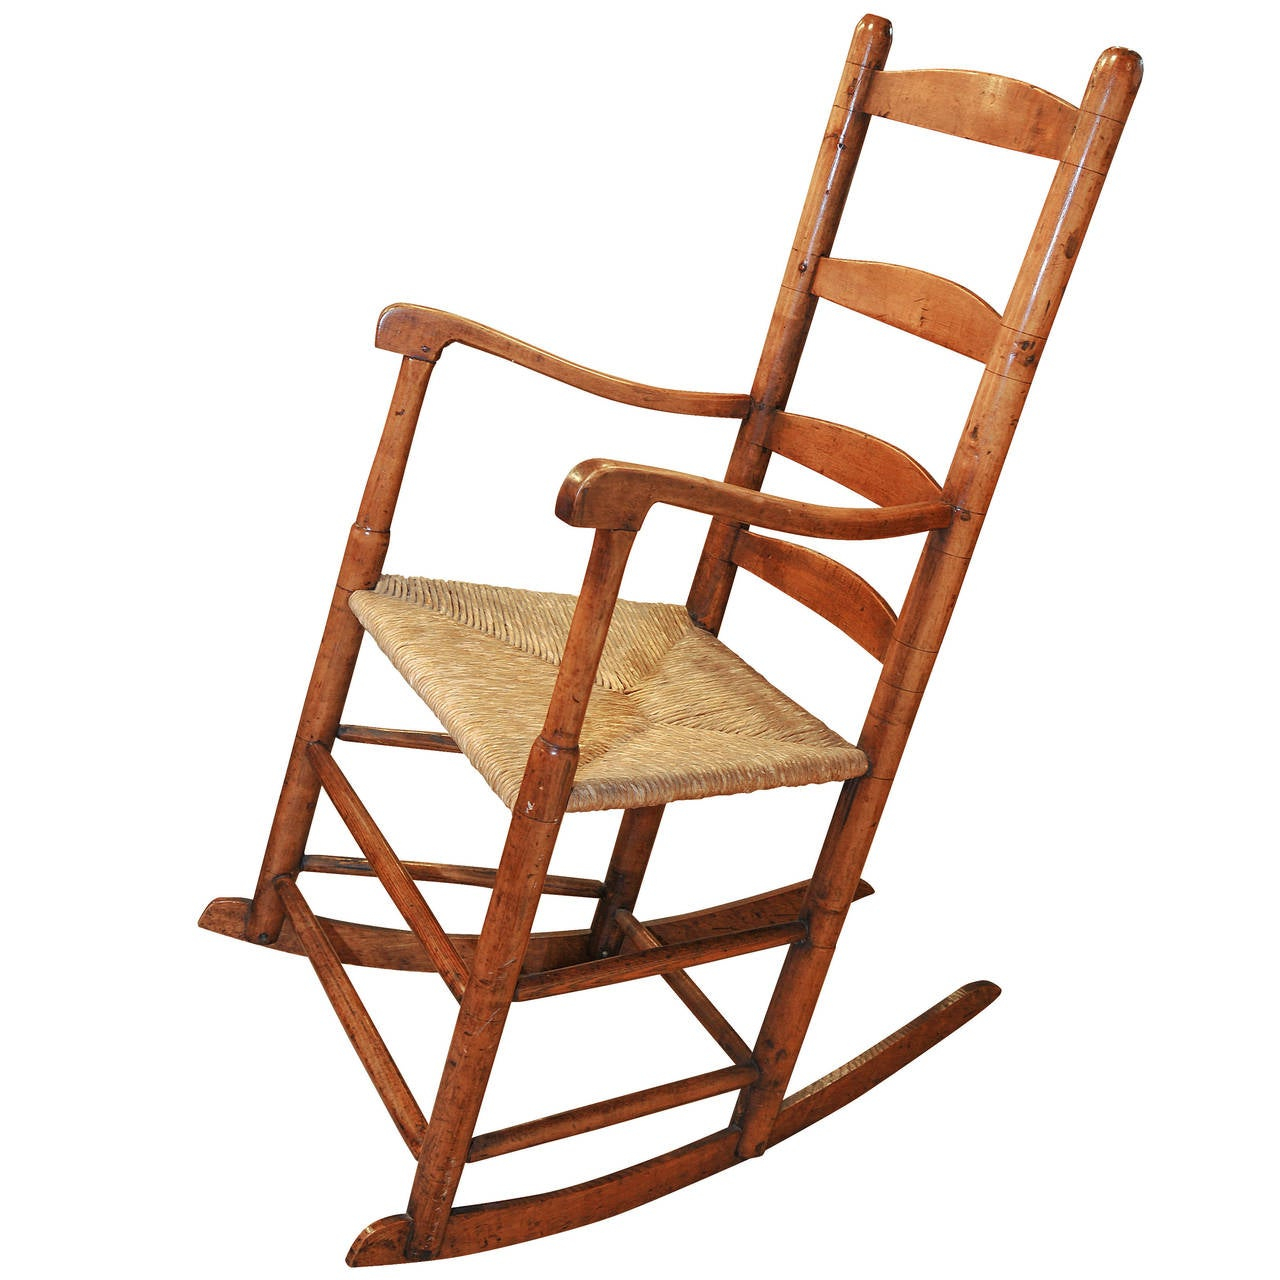 Early Rocking Chair For Sale at 1stdibs